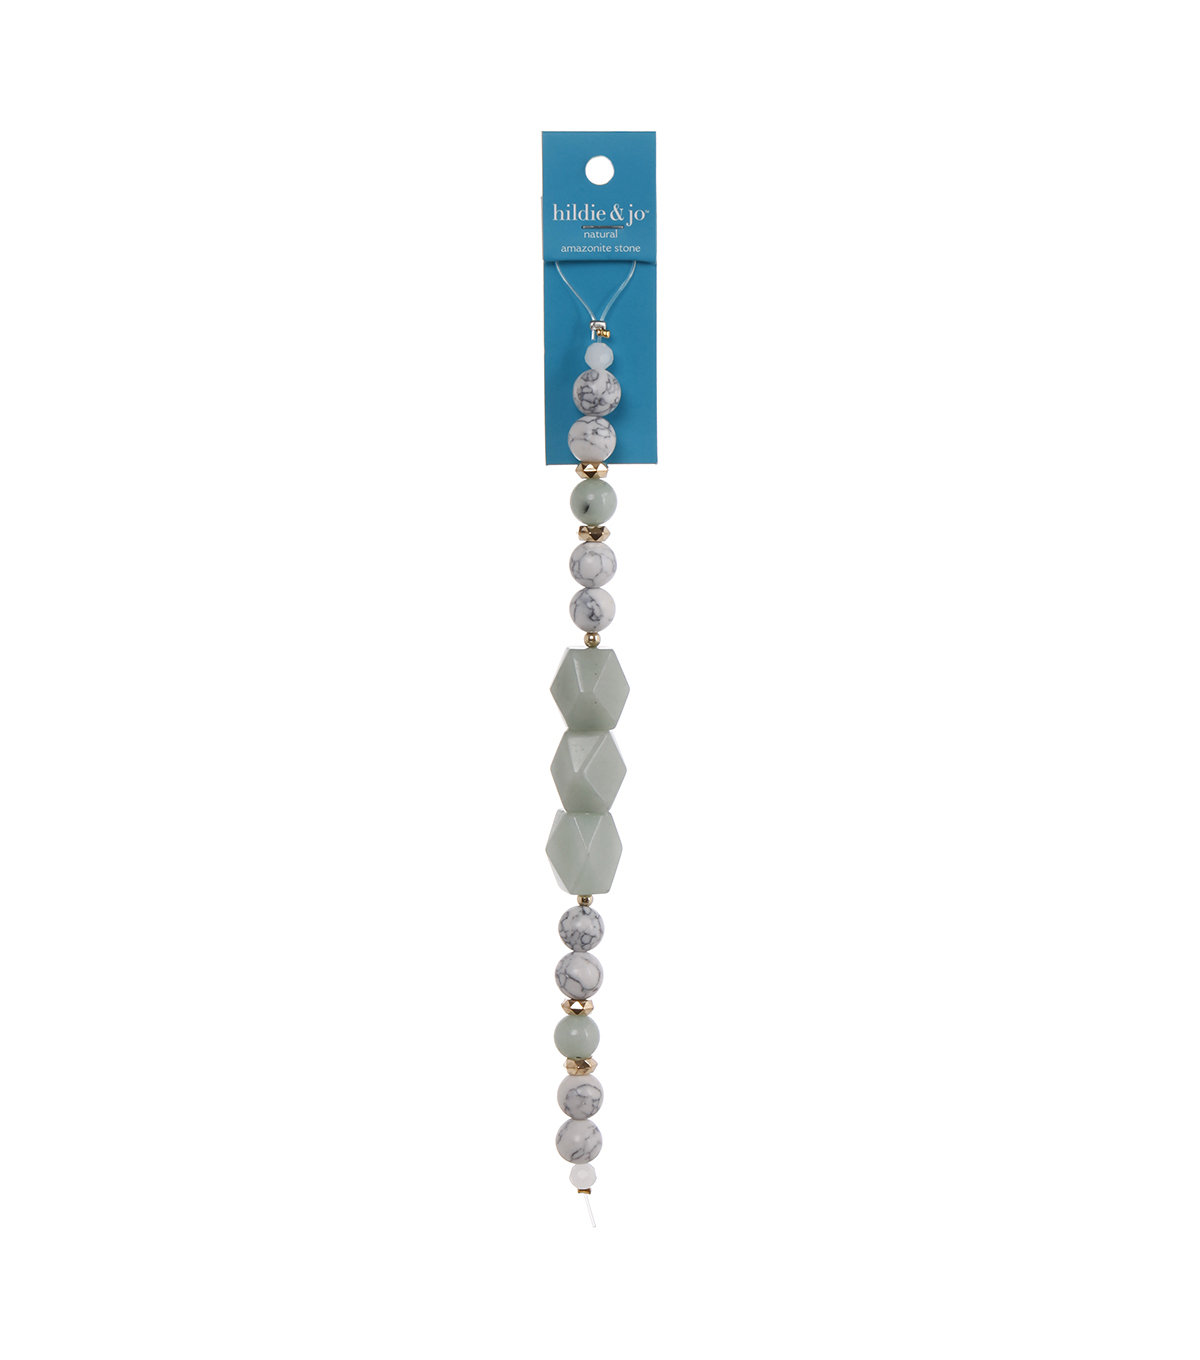 hildie & jo 7\u0027\u0027 Strung Beads-Mint White & Blue